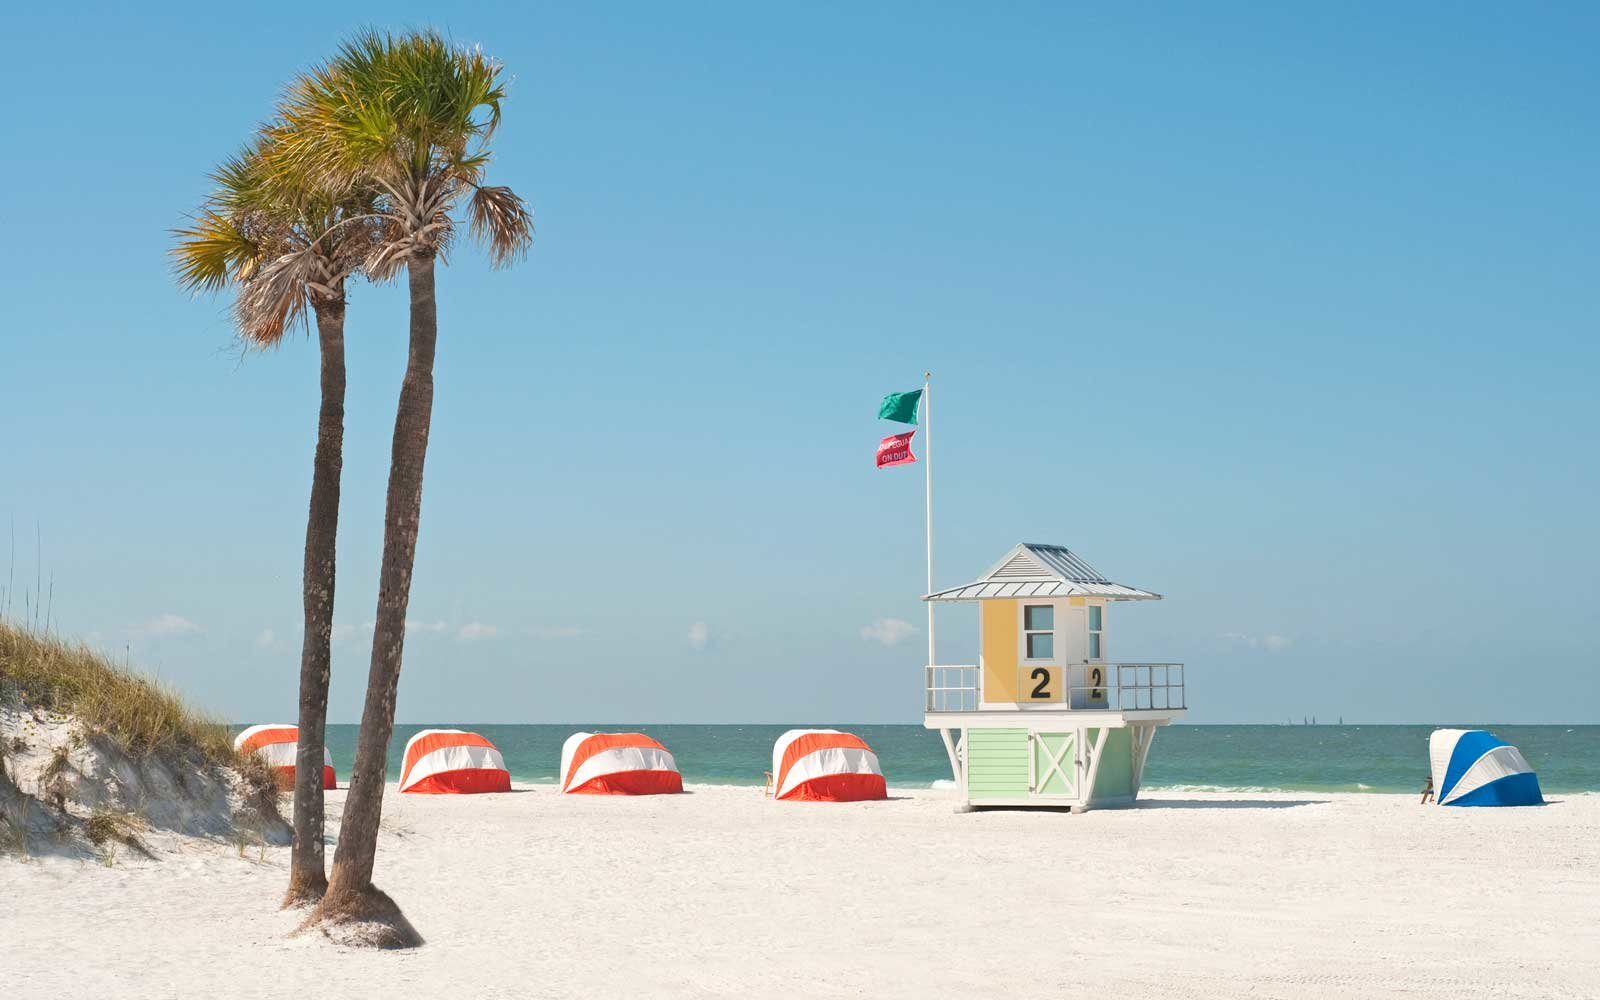 Lifeguard hut on beach with palm trees and beach tents in Clearwater, Florida